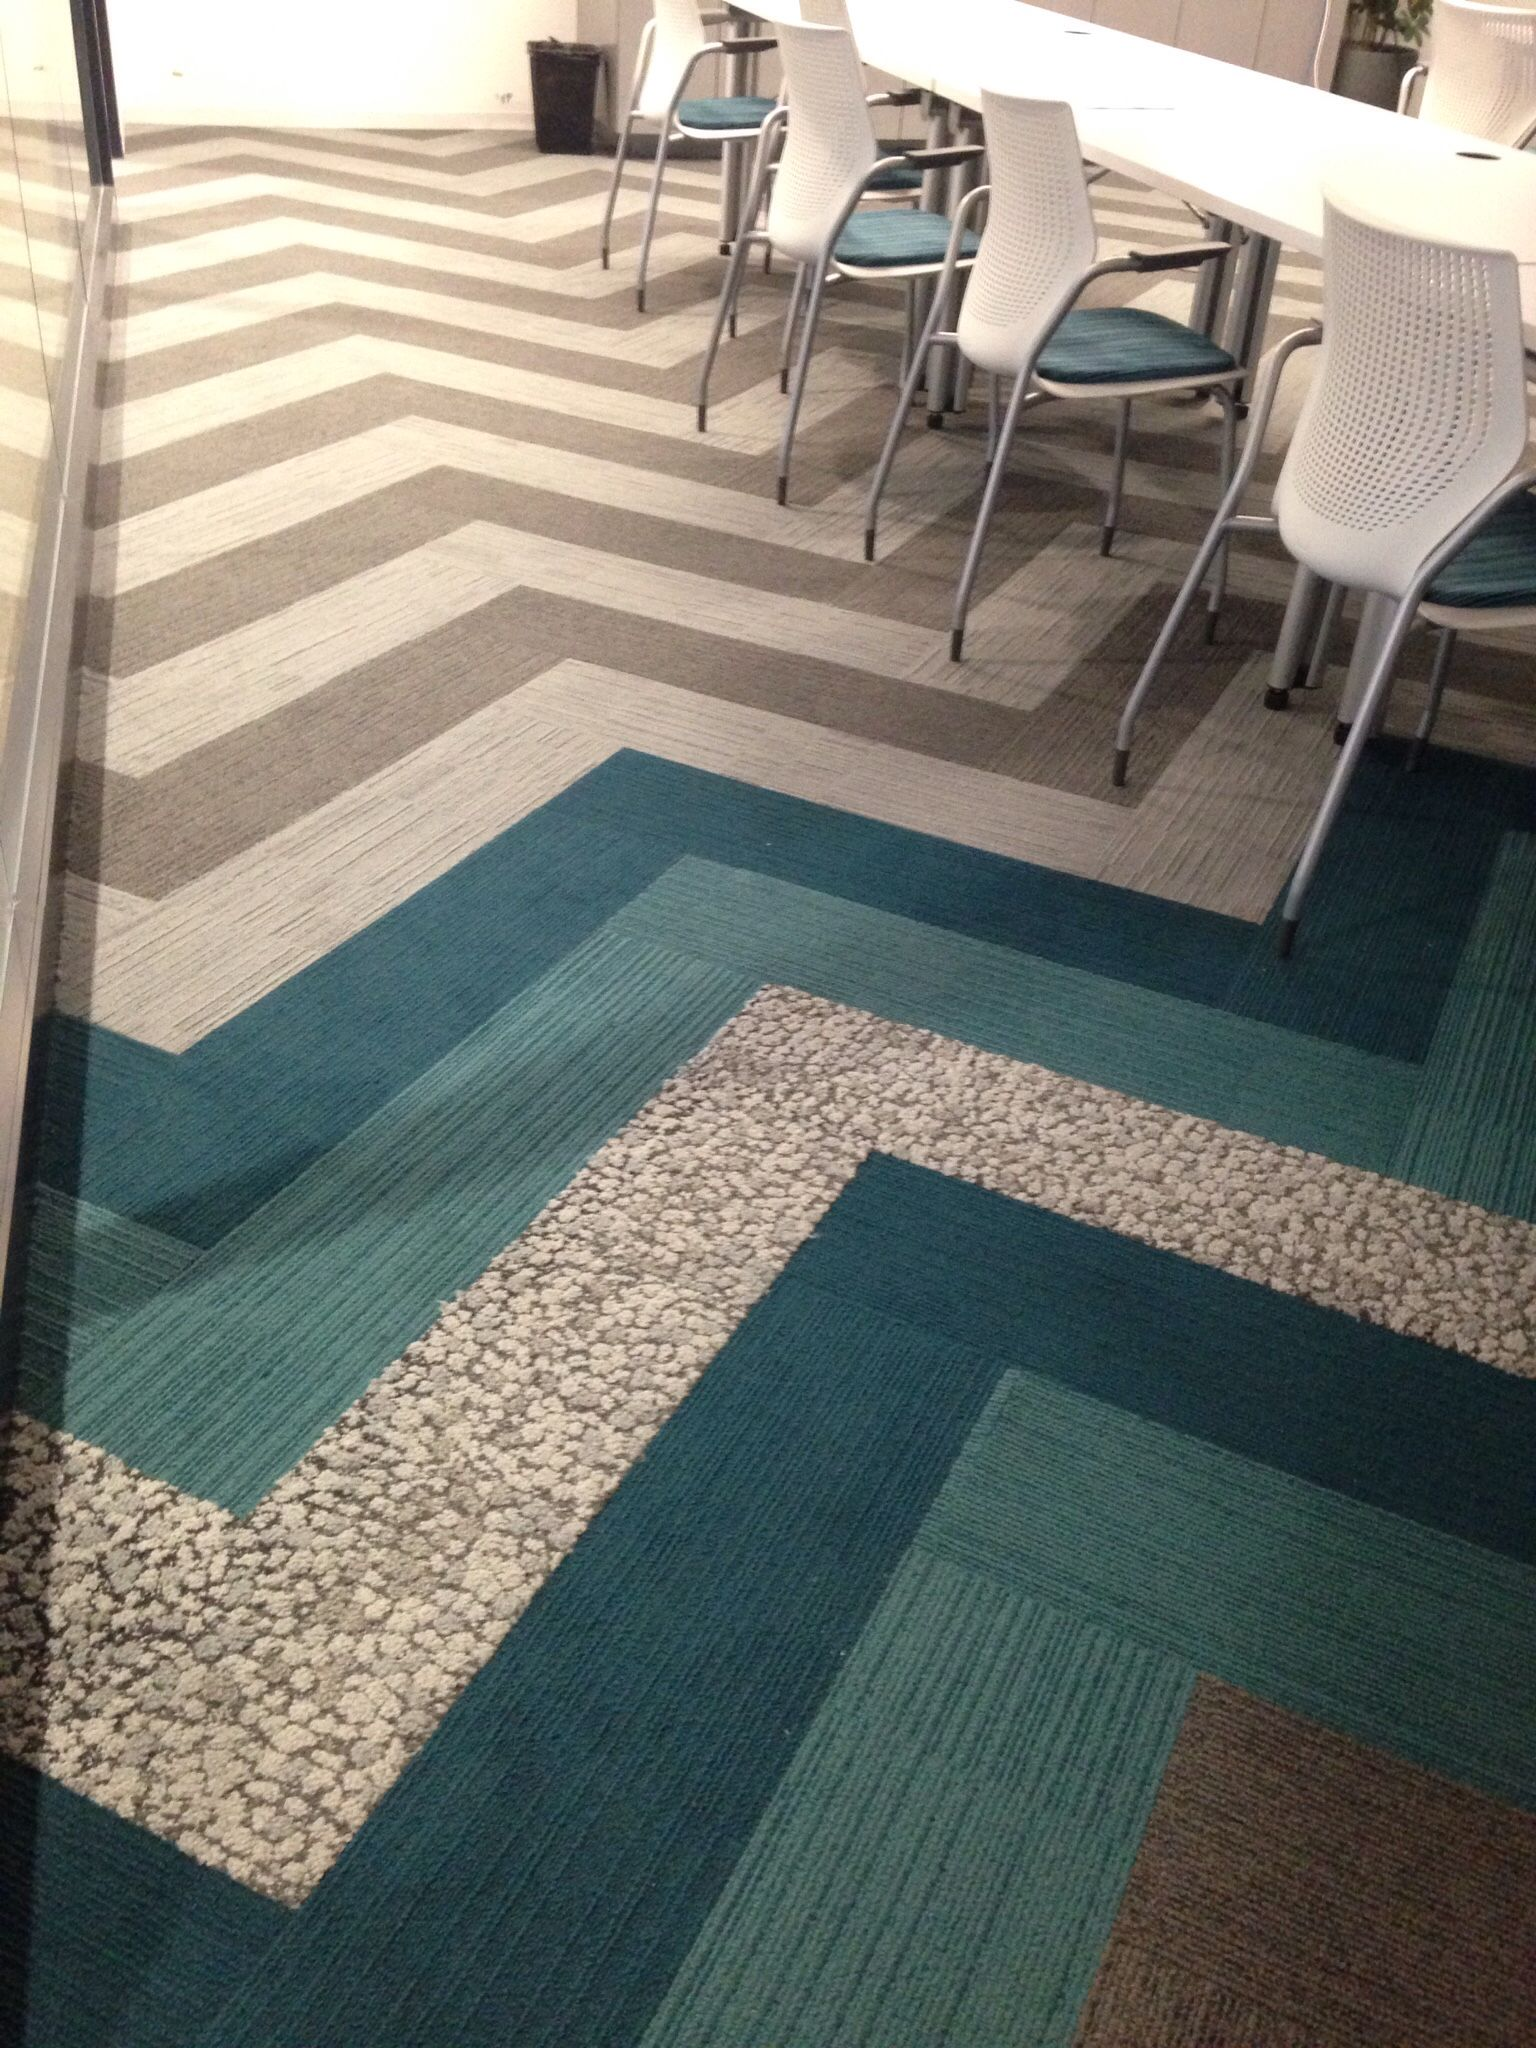 Interface  On Line in a Chevron with Human Nature HN840  All Things Interface  Pinterest